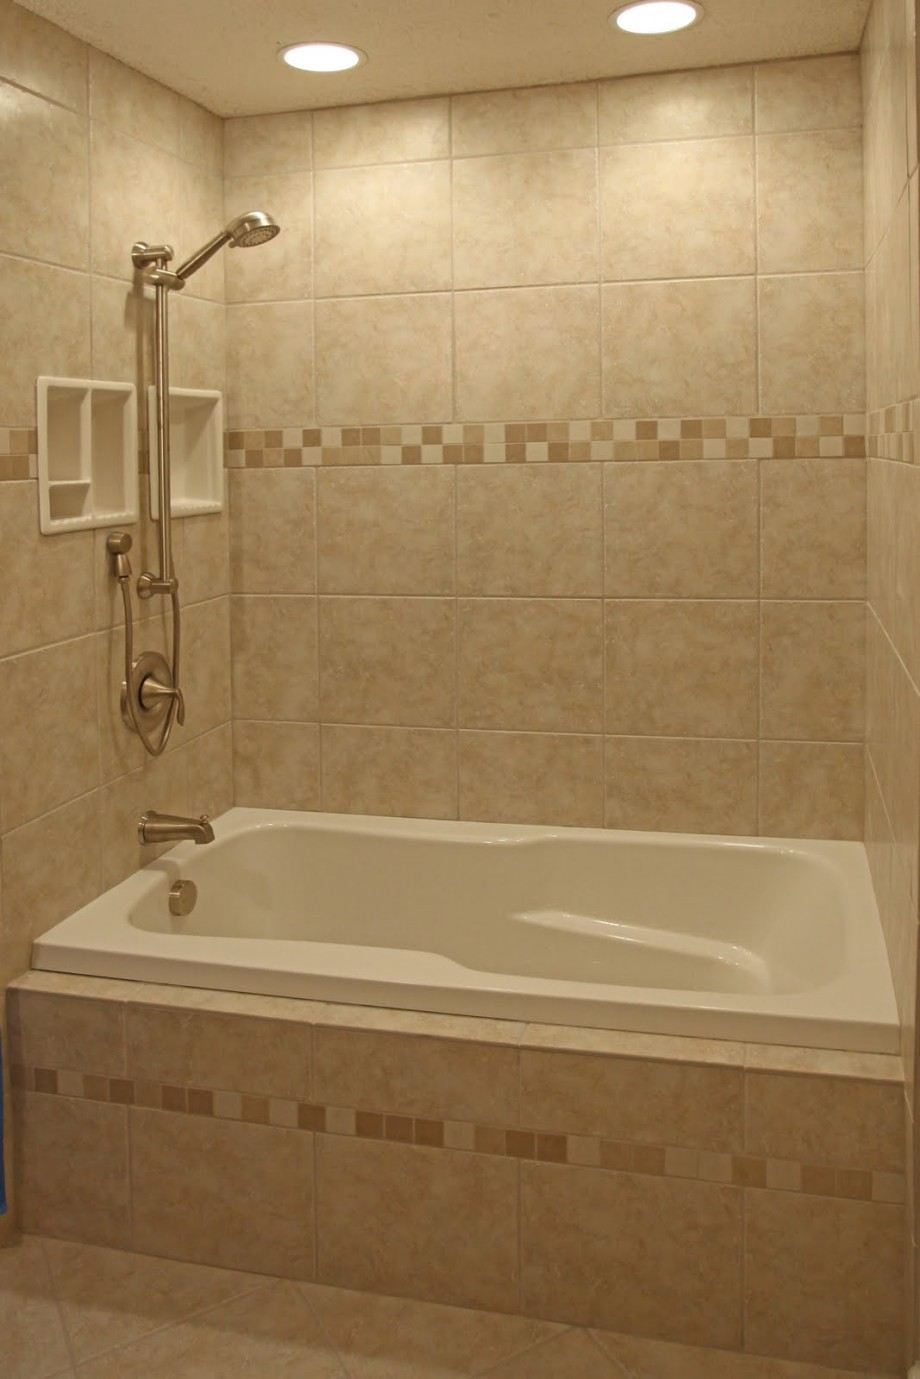 Sumptuous Wall and Floor Tile Bathroom also Tub and Steel Shower